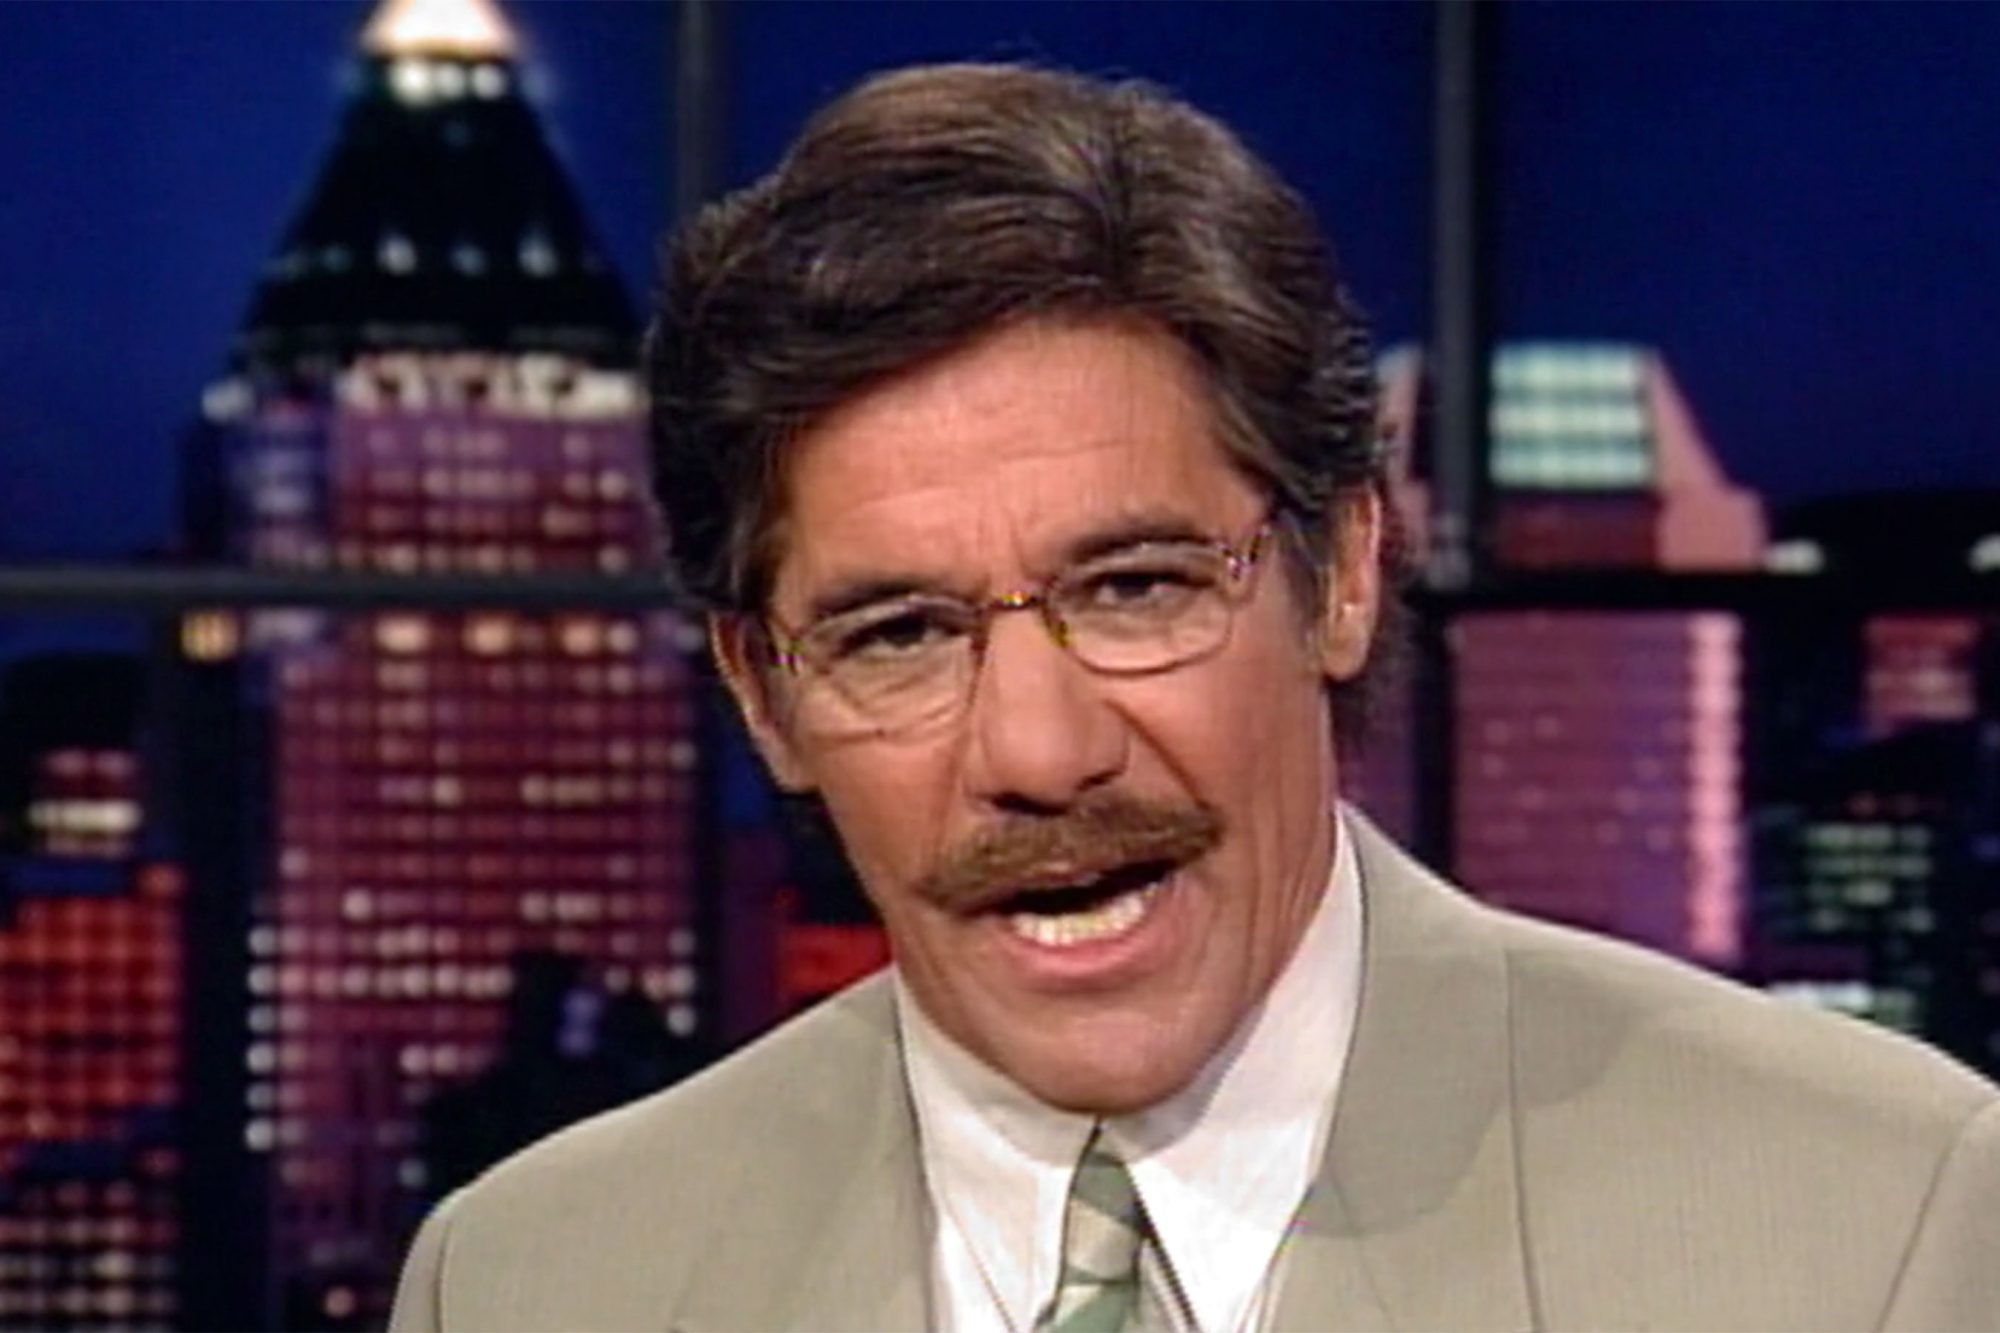 39. Geraldo Rivera as himself